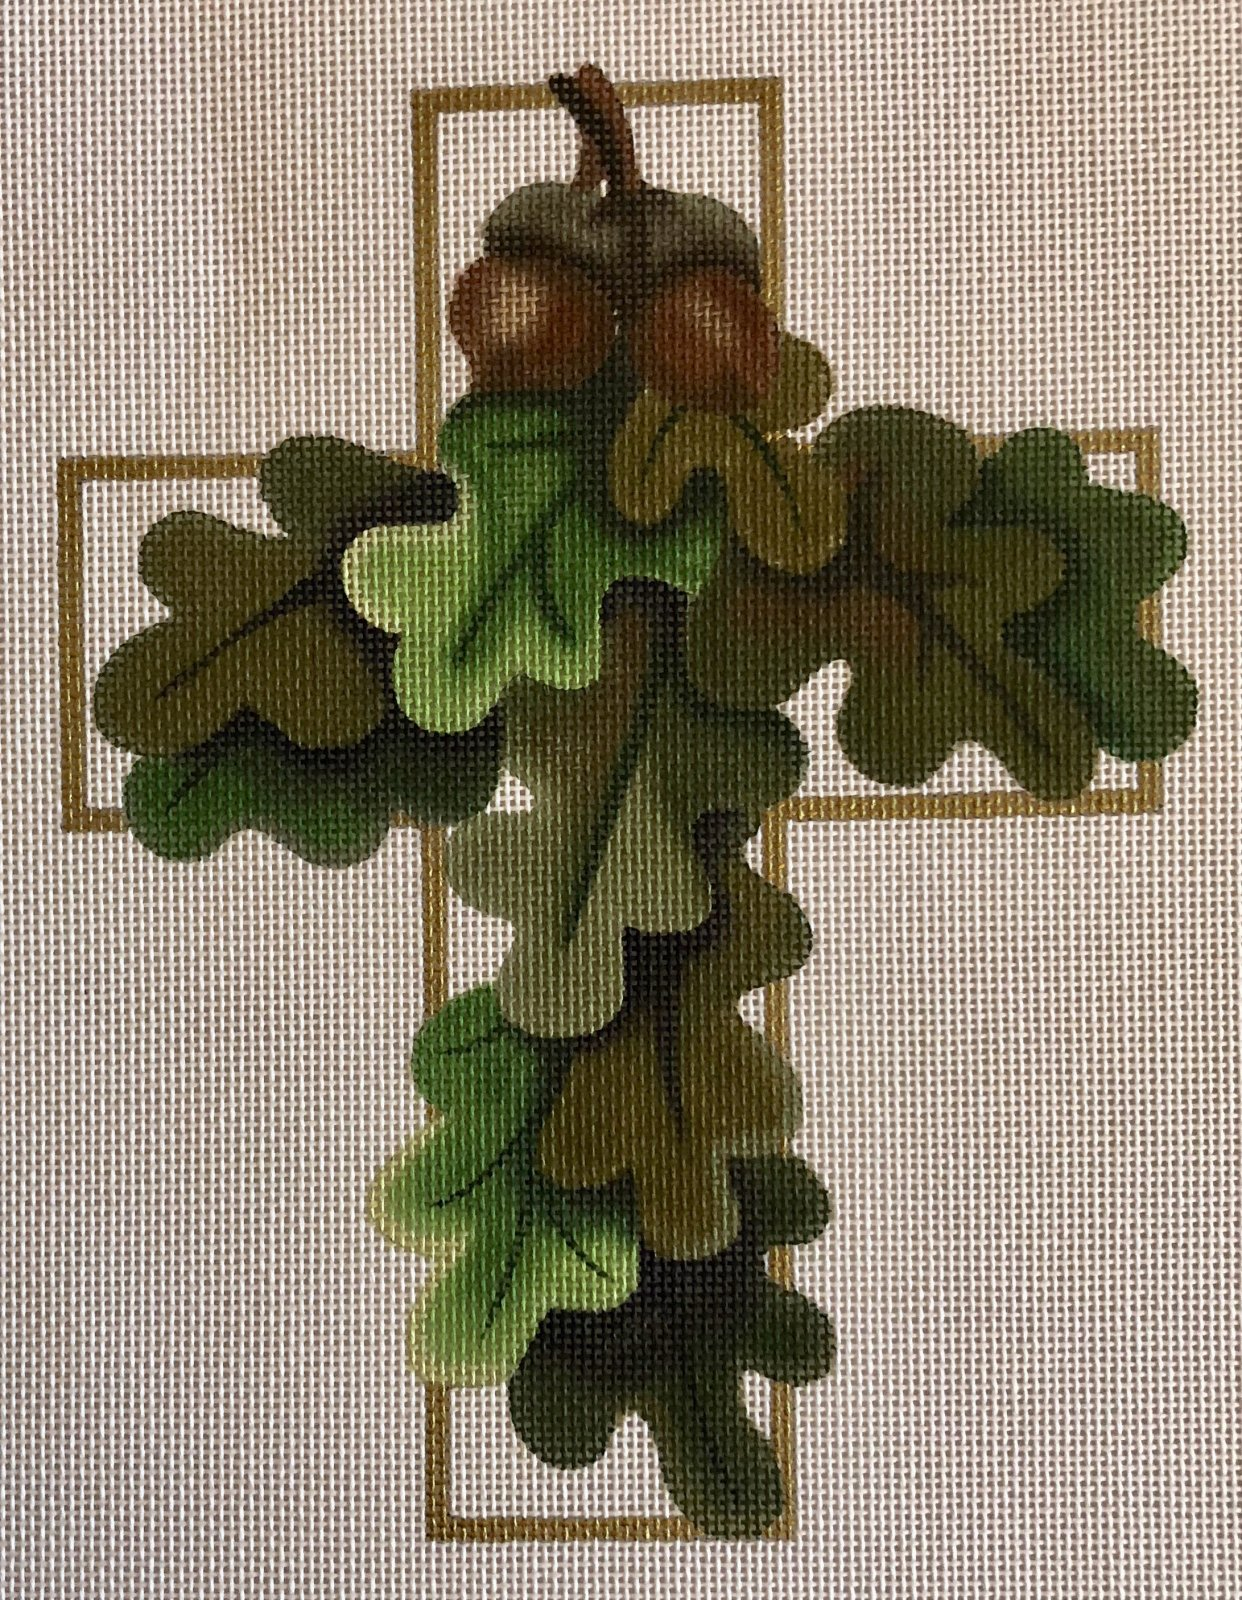 oak leaf cross